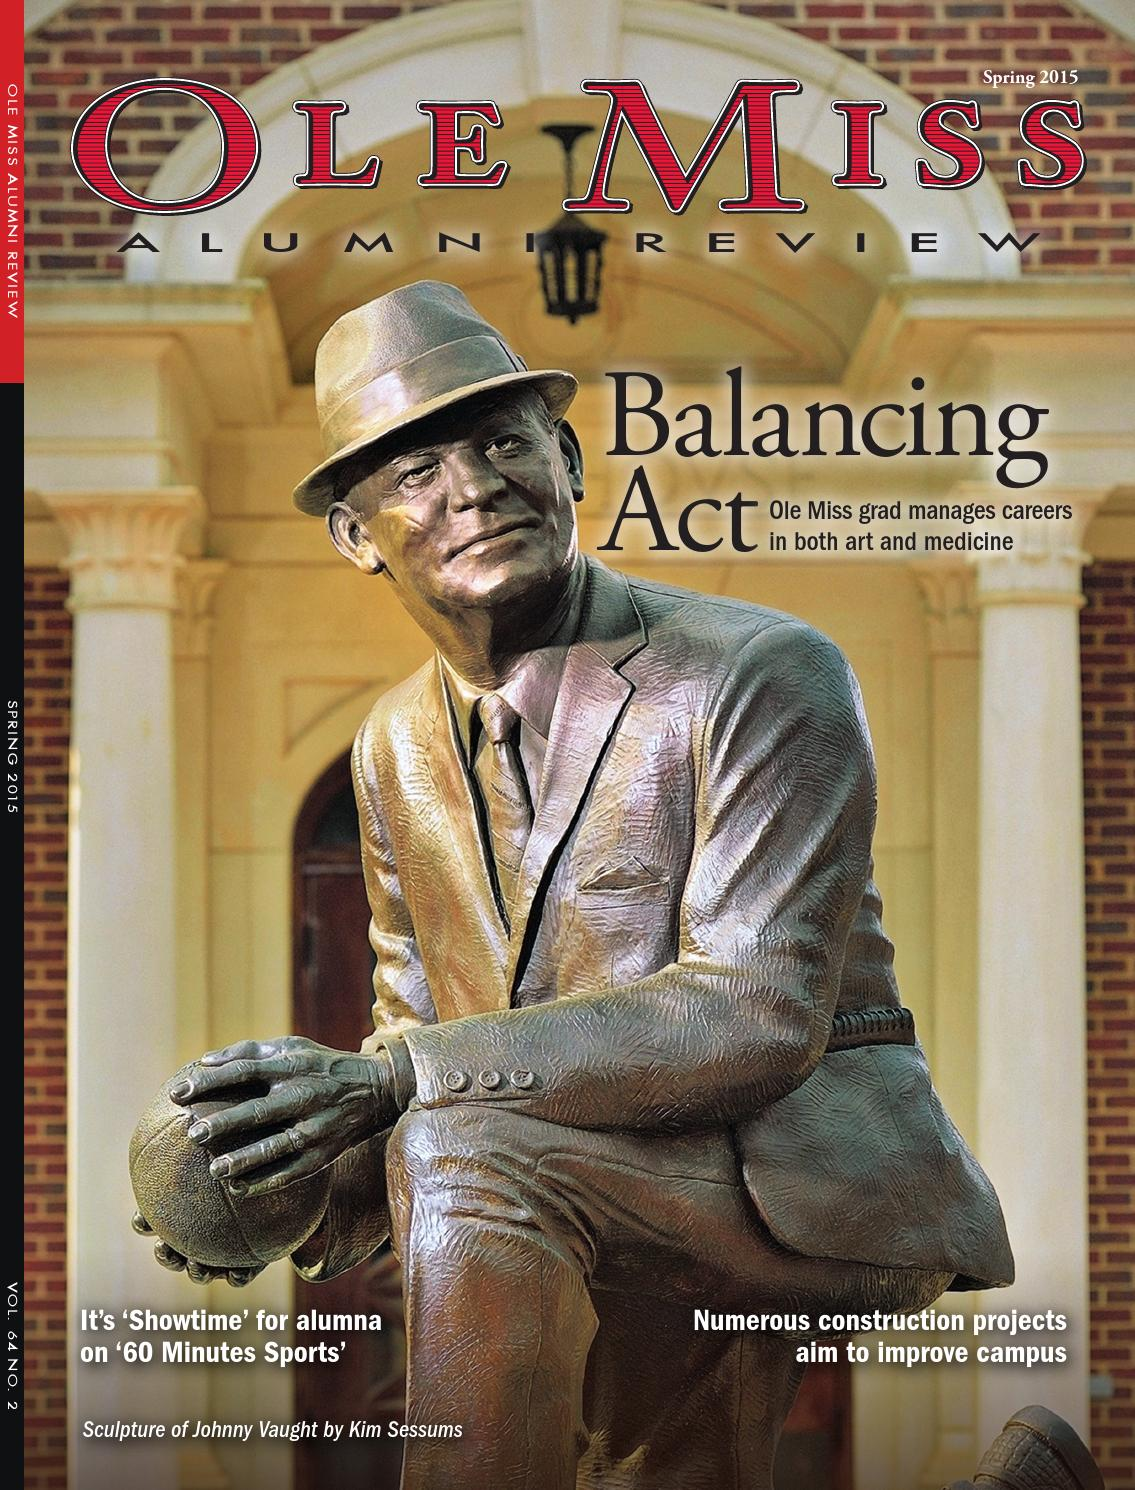 ole miss alumni review spring 2015 by ole miss alumni association issuu ole miss alumni review spring 2015 by